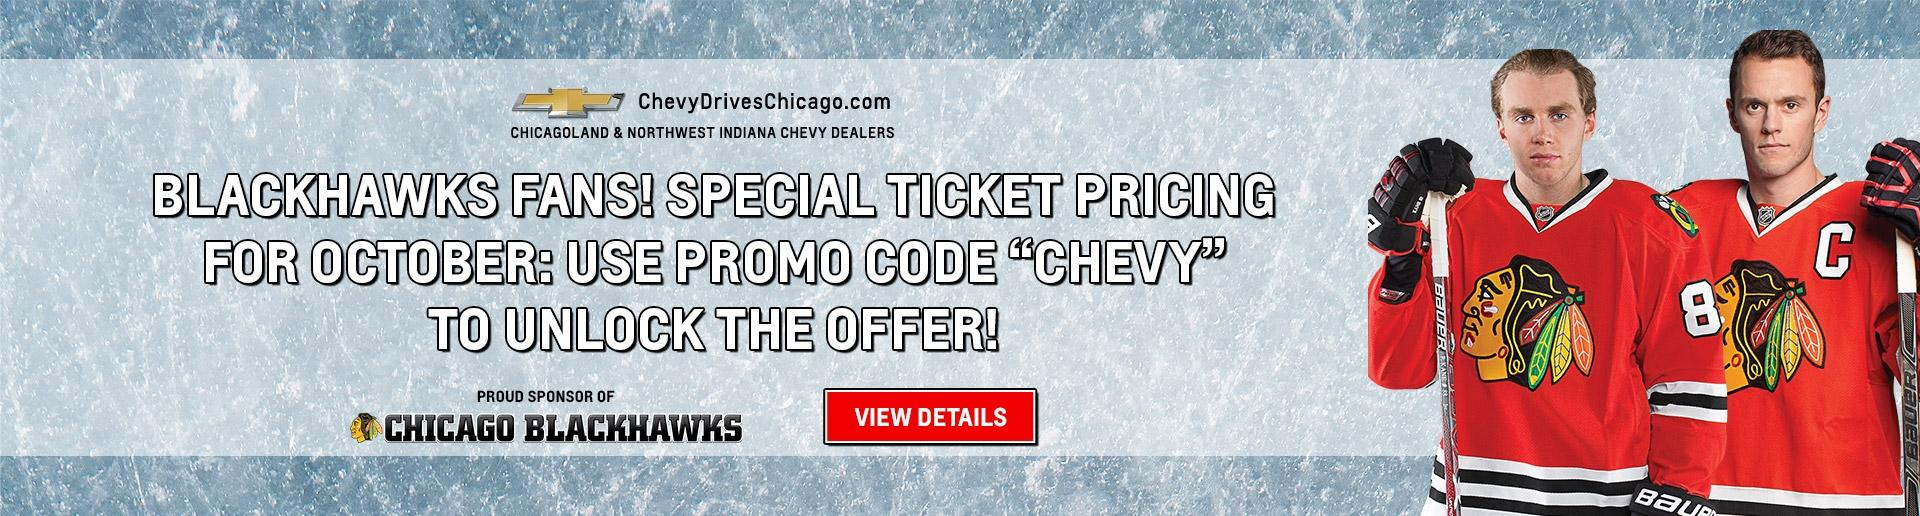 Chevy Drives Chicago Blackhawks Special